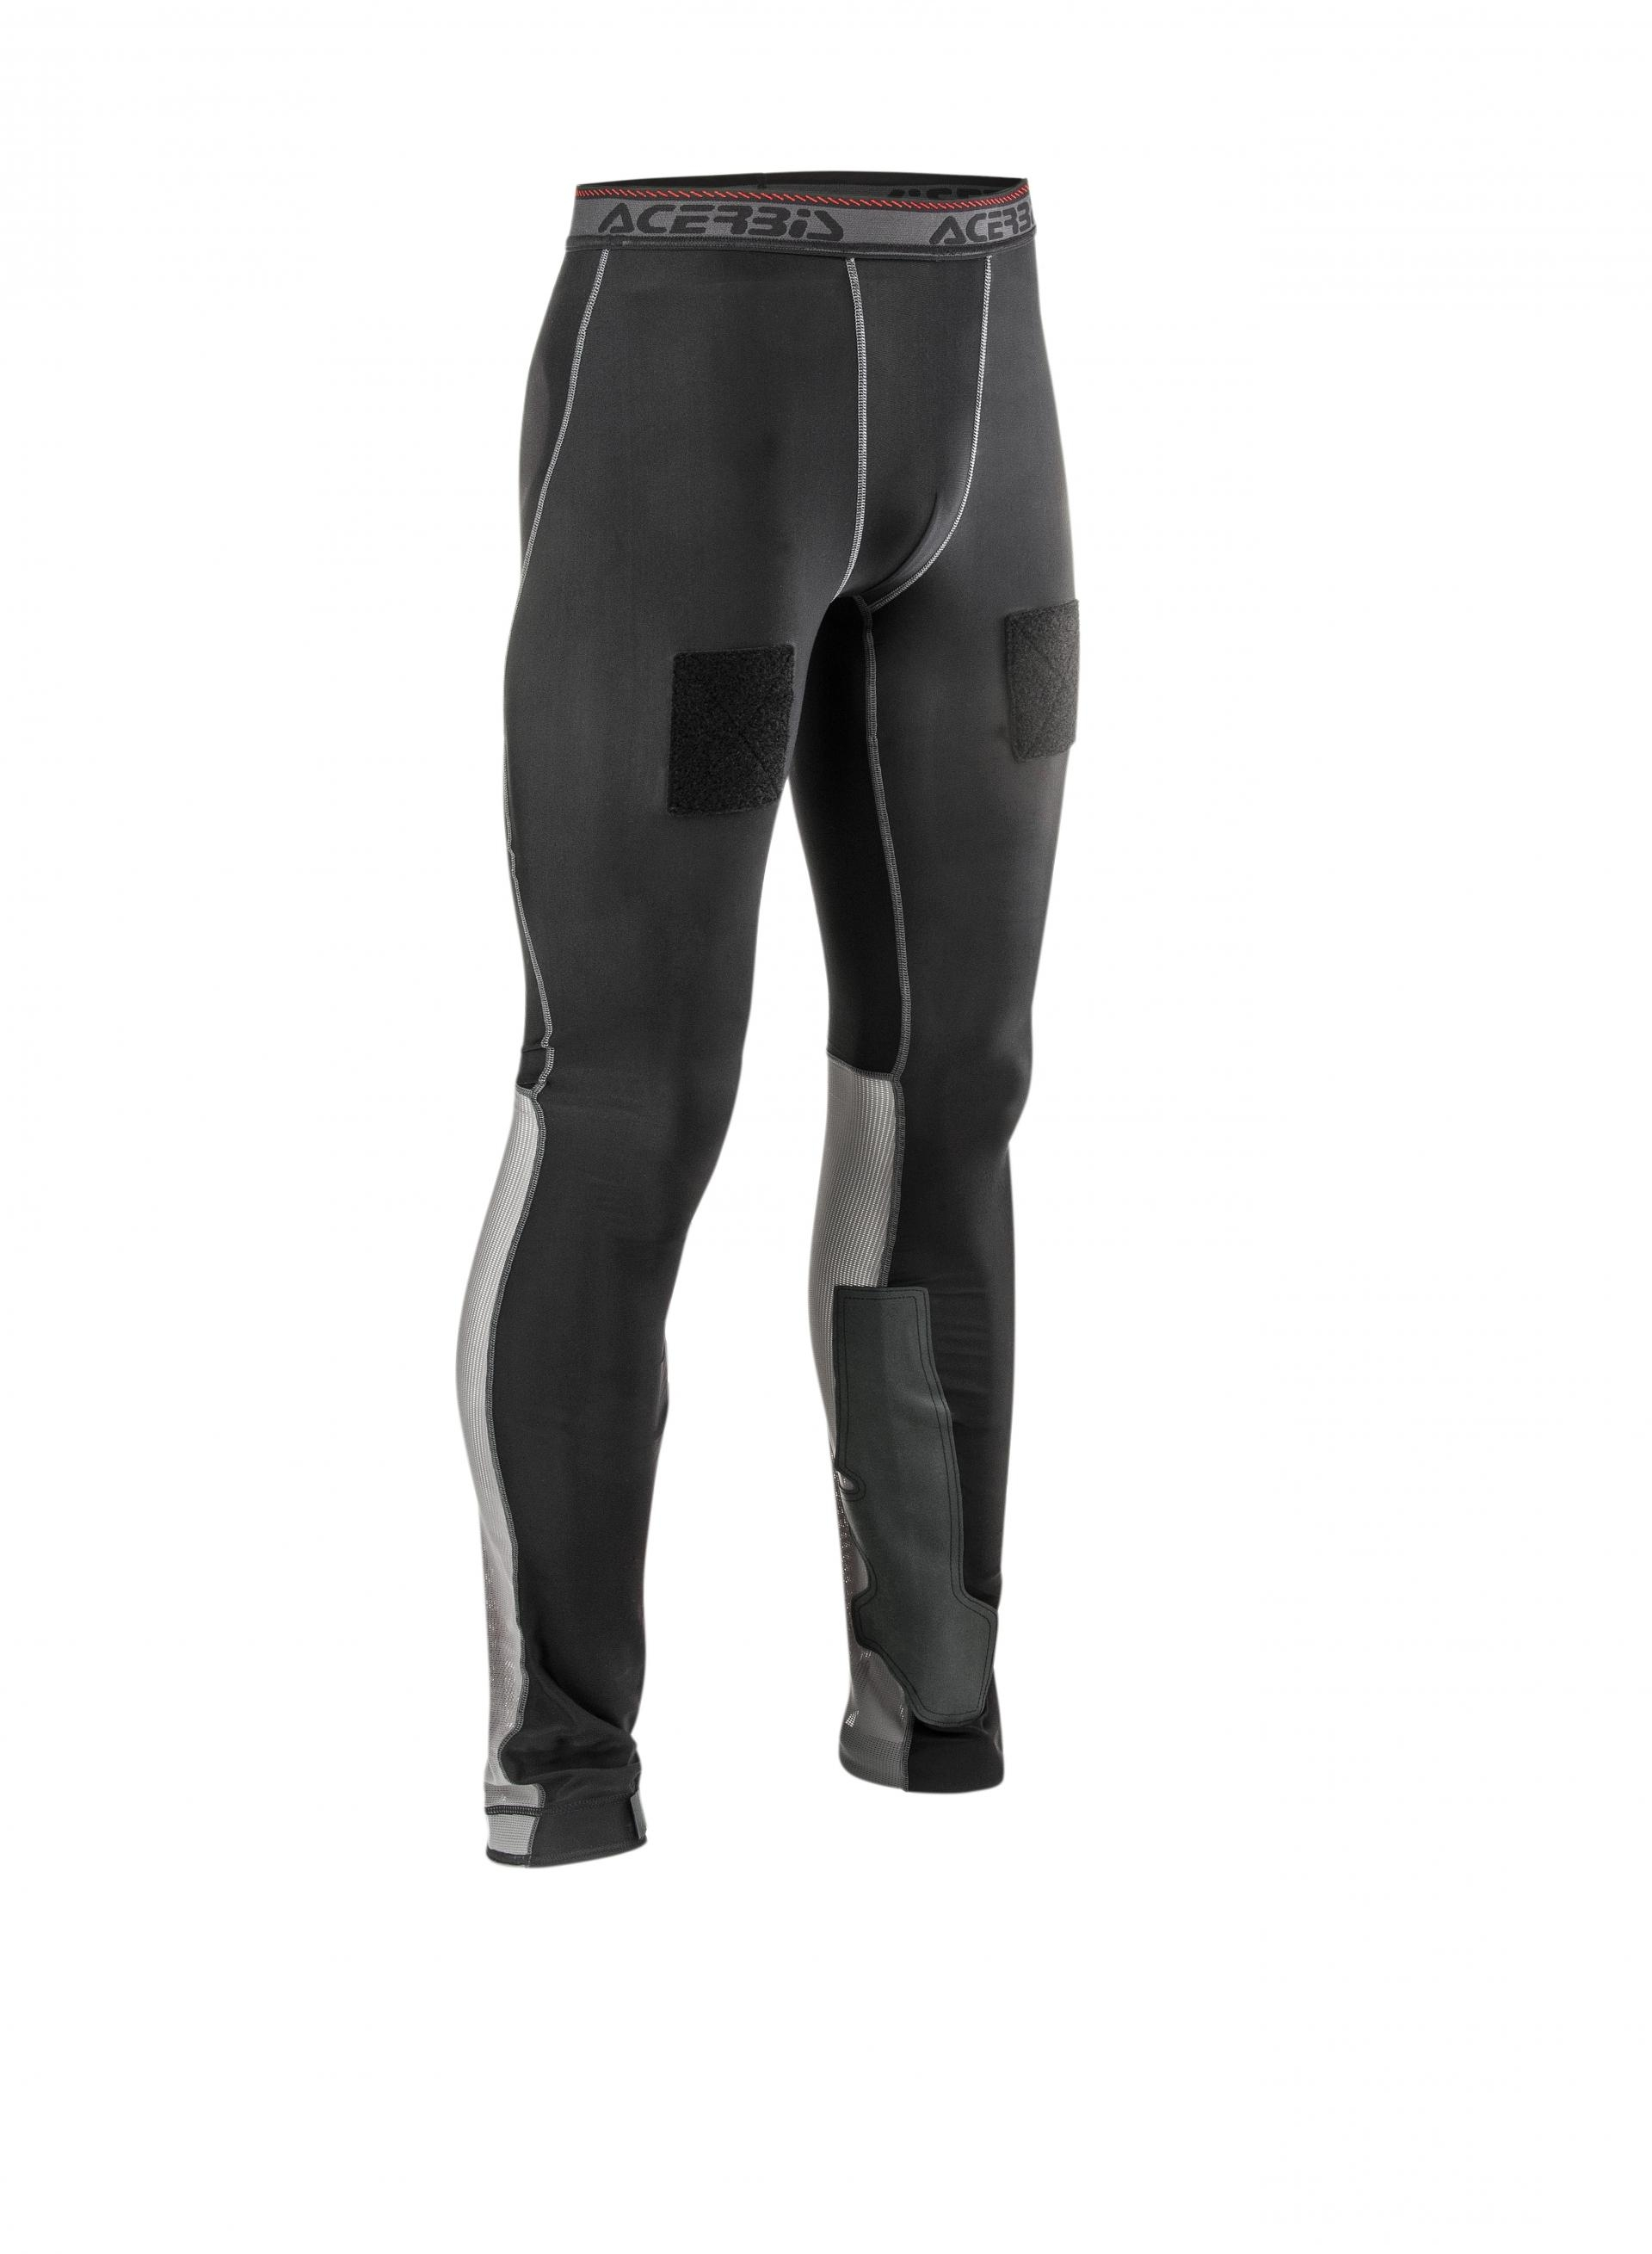 Calze lunghe per ginocchiere Acerbis X-KNEE GECO 1